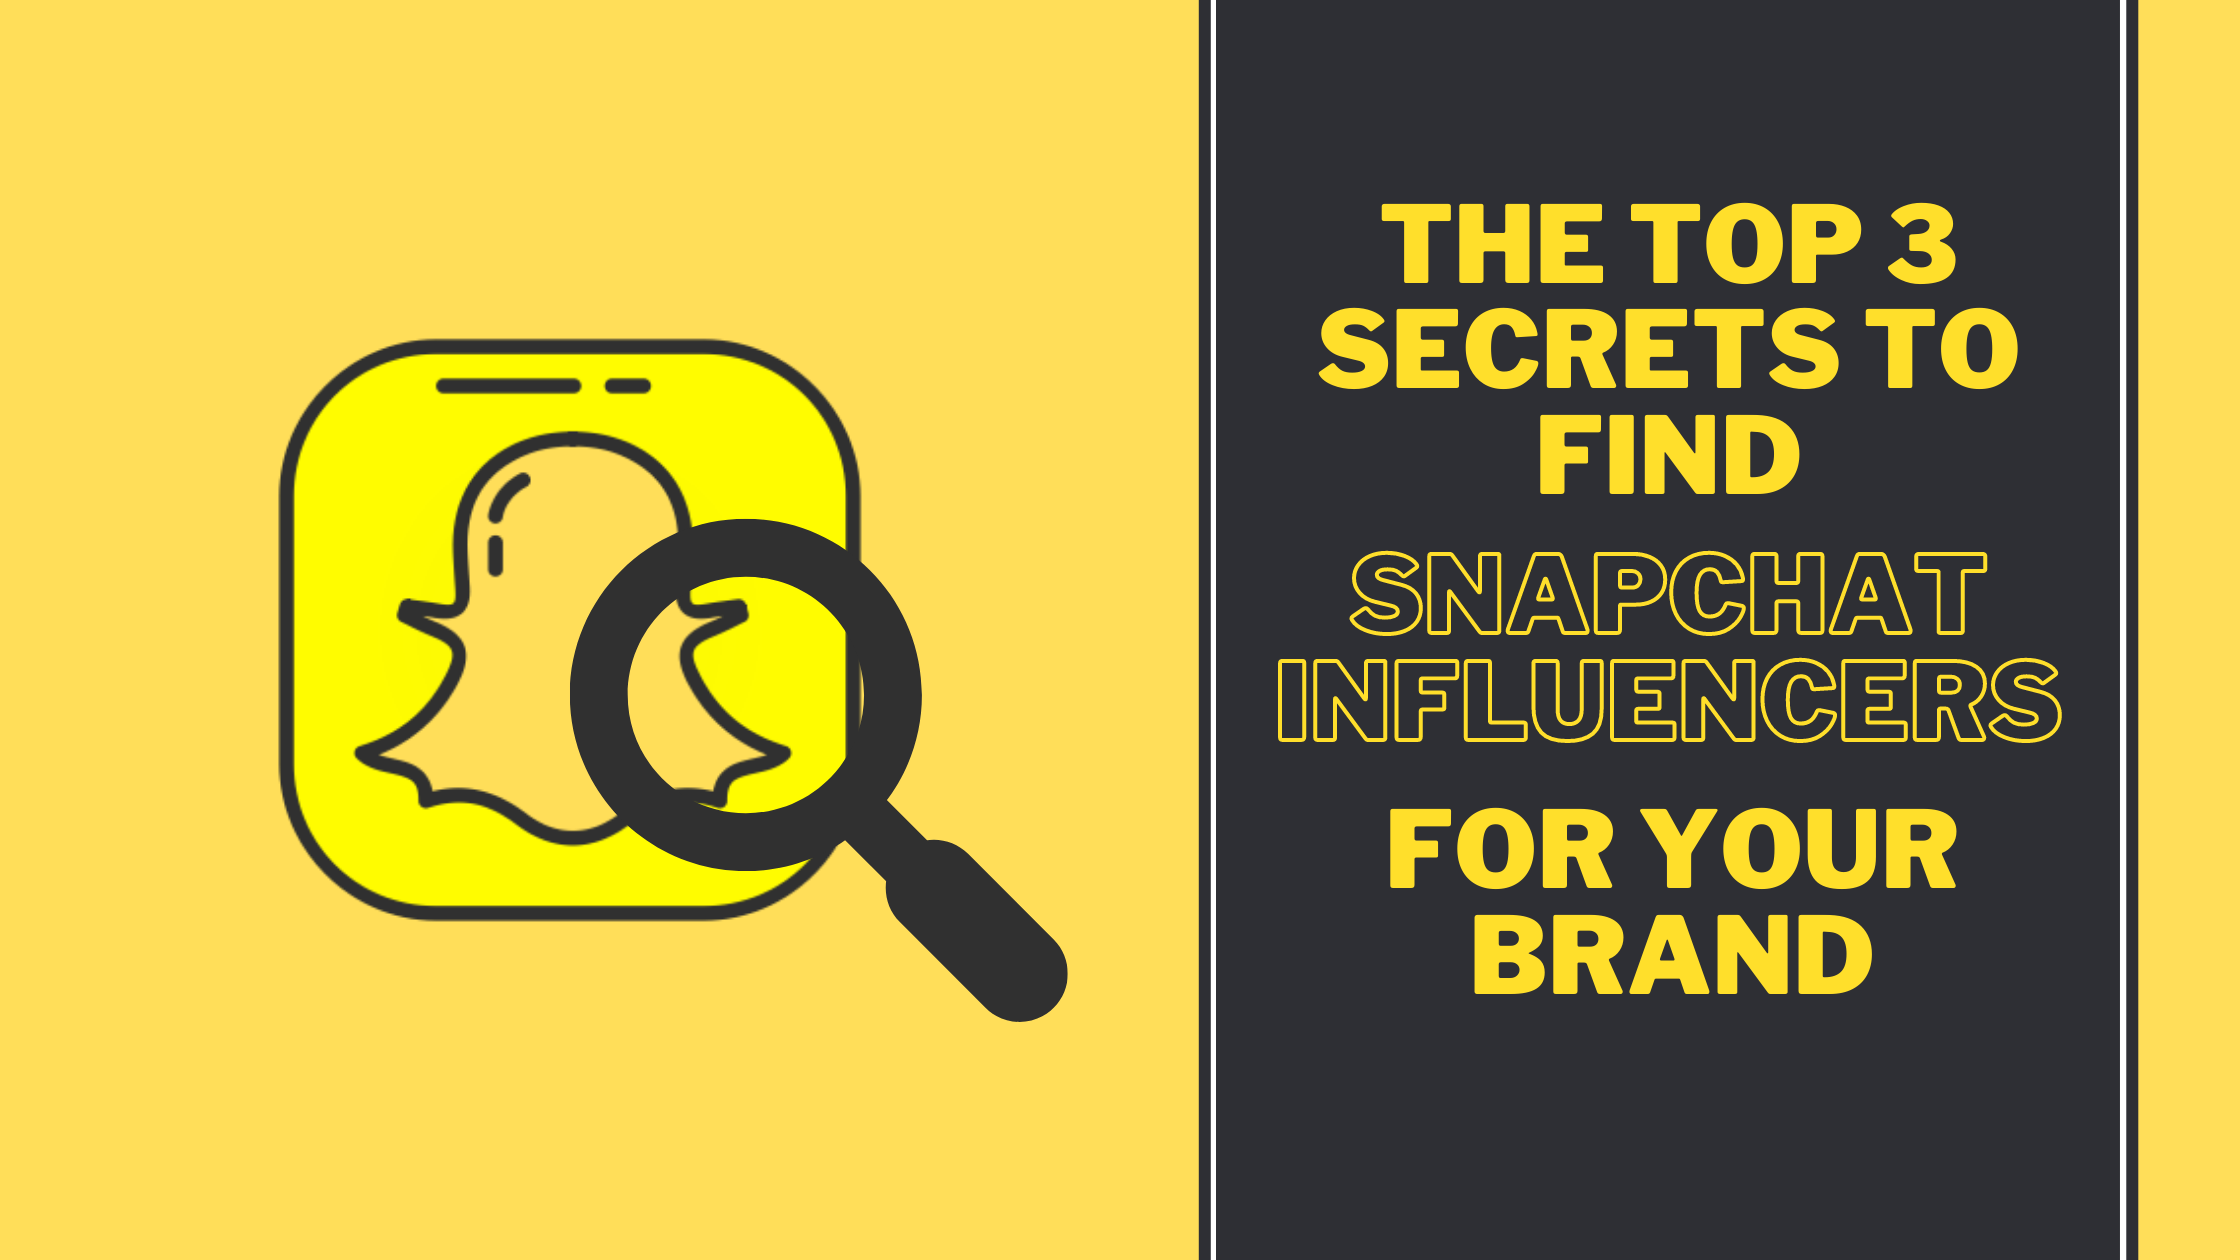 The Top 3 Secrets to Find Snapchat Influencers for your Brand